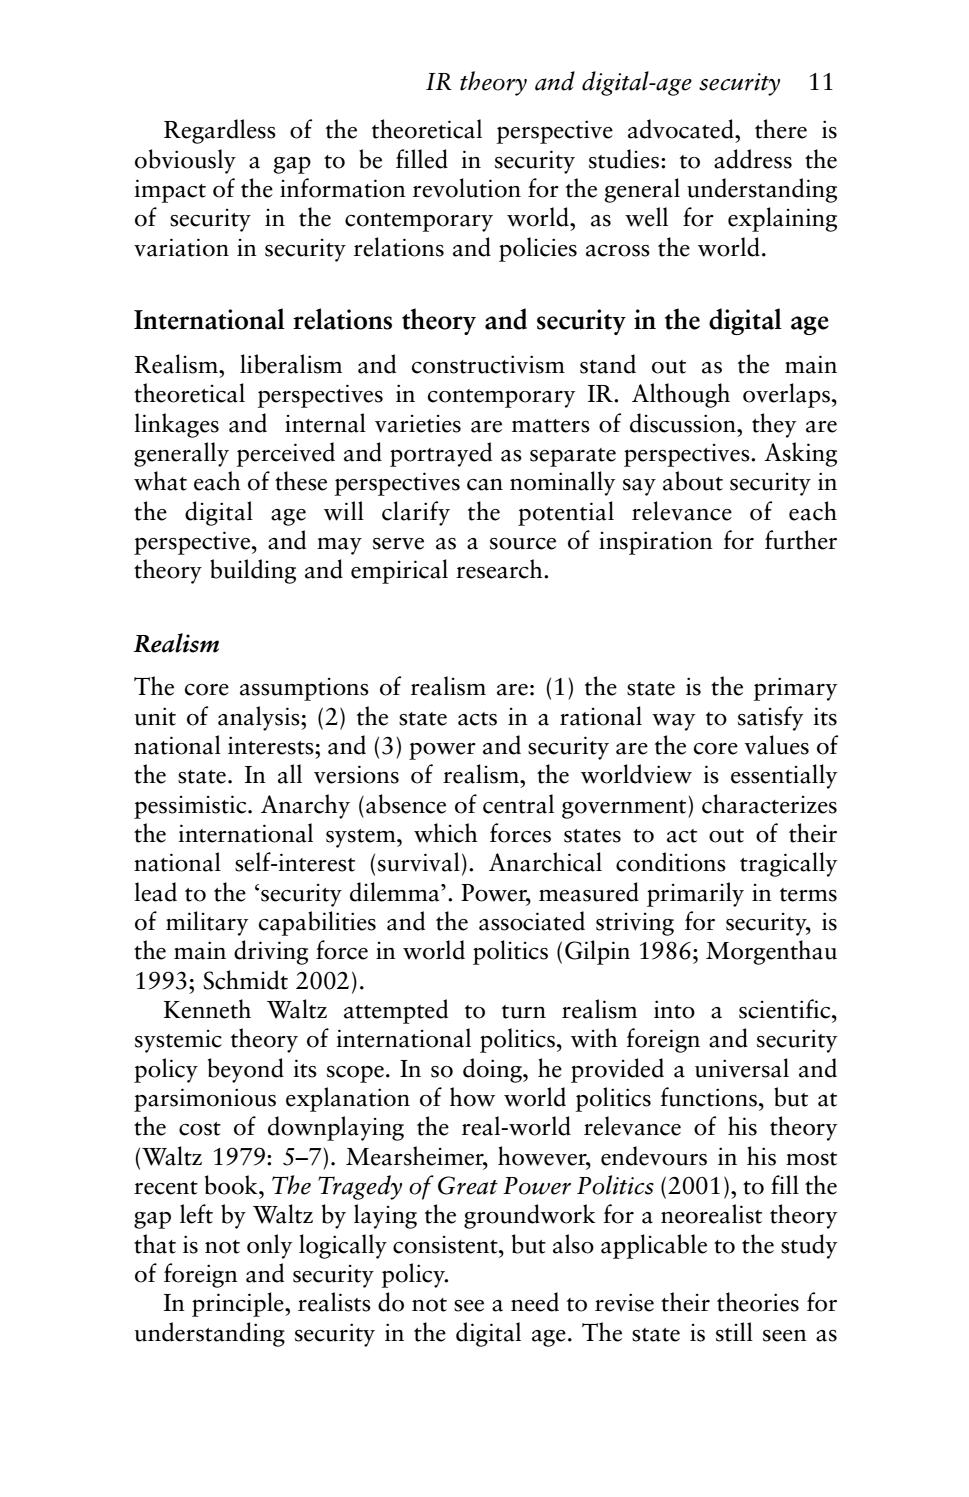 International Relations and Security in the Digital Age by